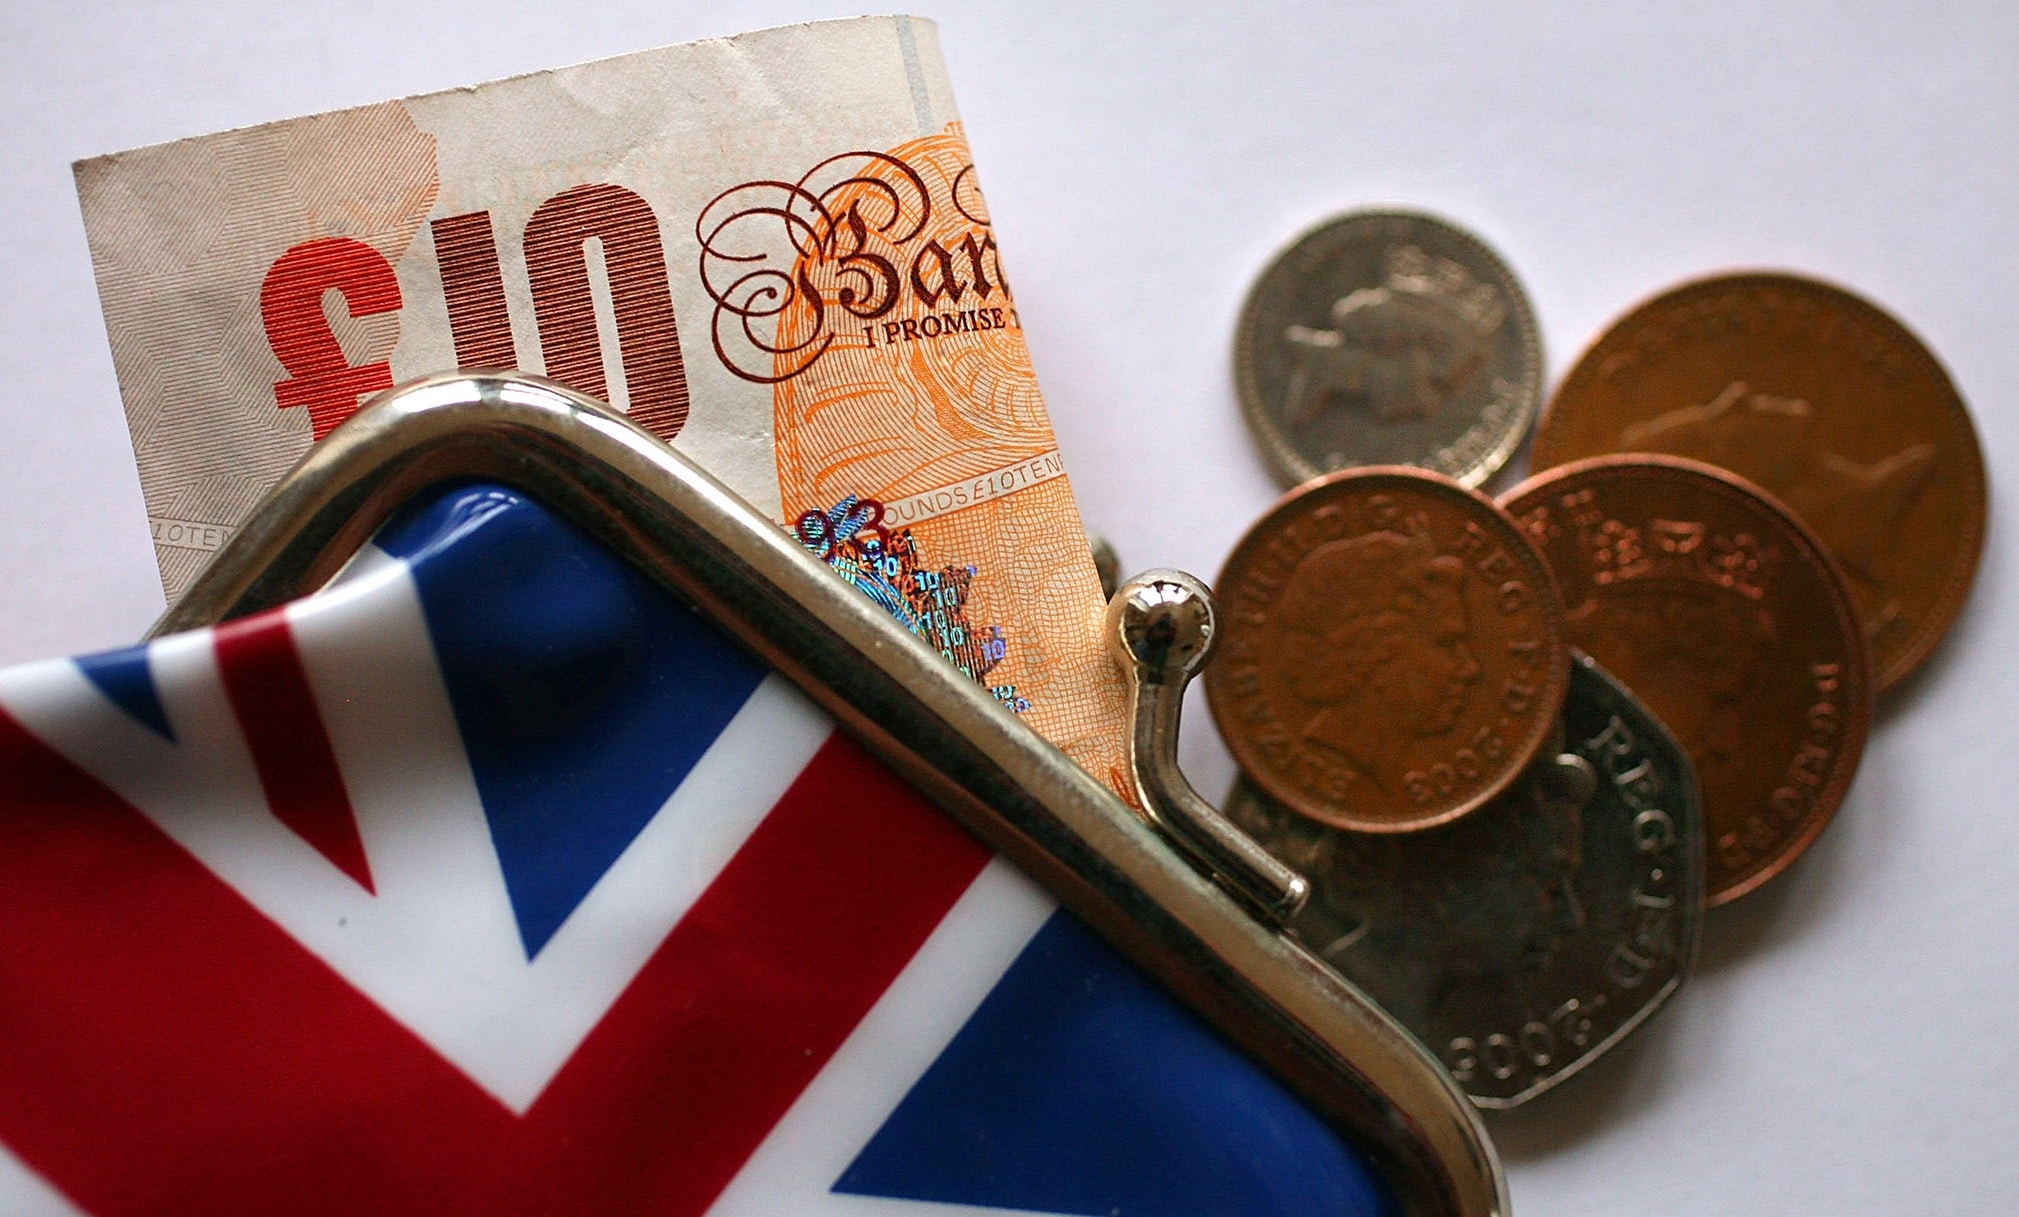 Brexit in limbo: The UK Economy stabilizes after declines, more bad news for British  economy and UK assets – Del Report